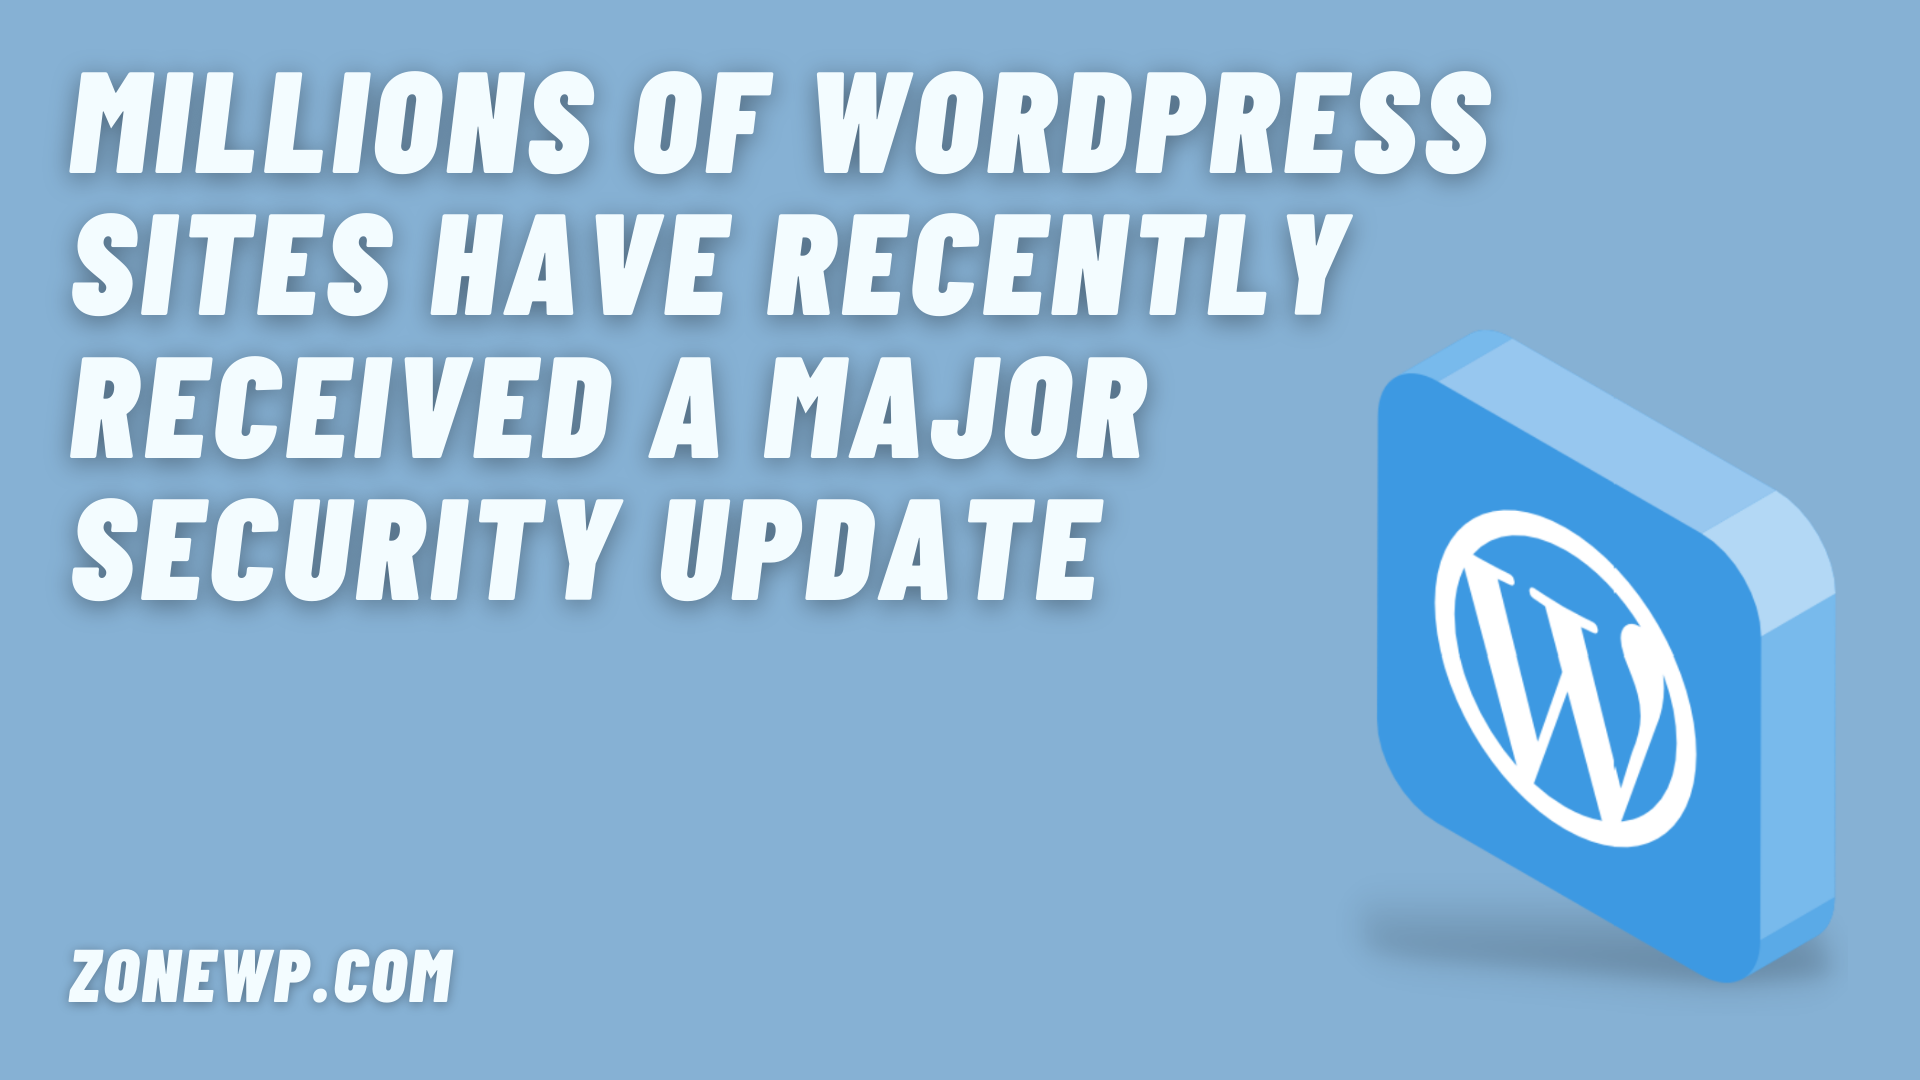 Millions of WordPress sites have recently received a major security update